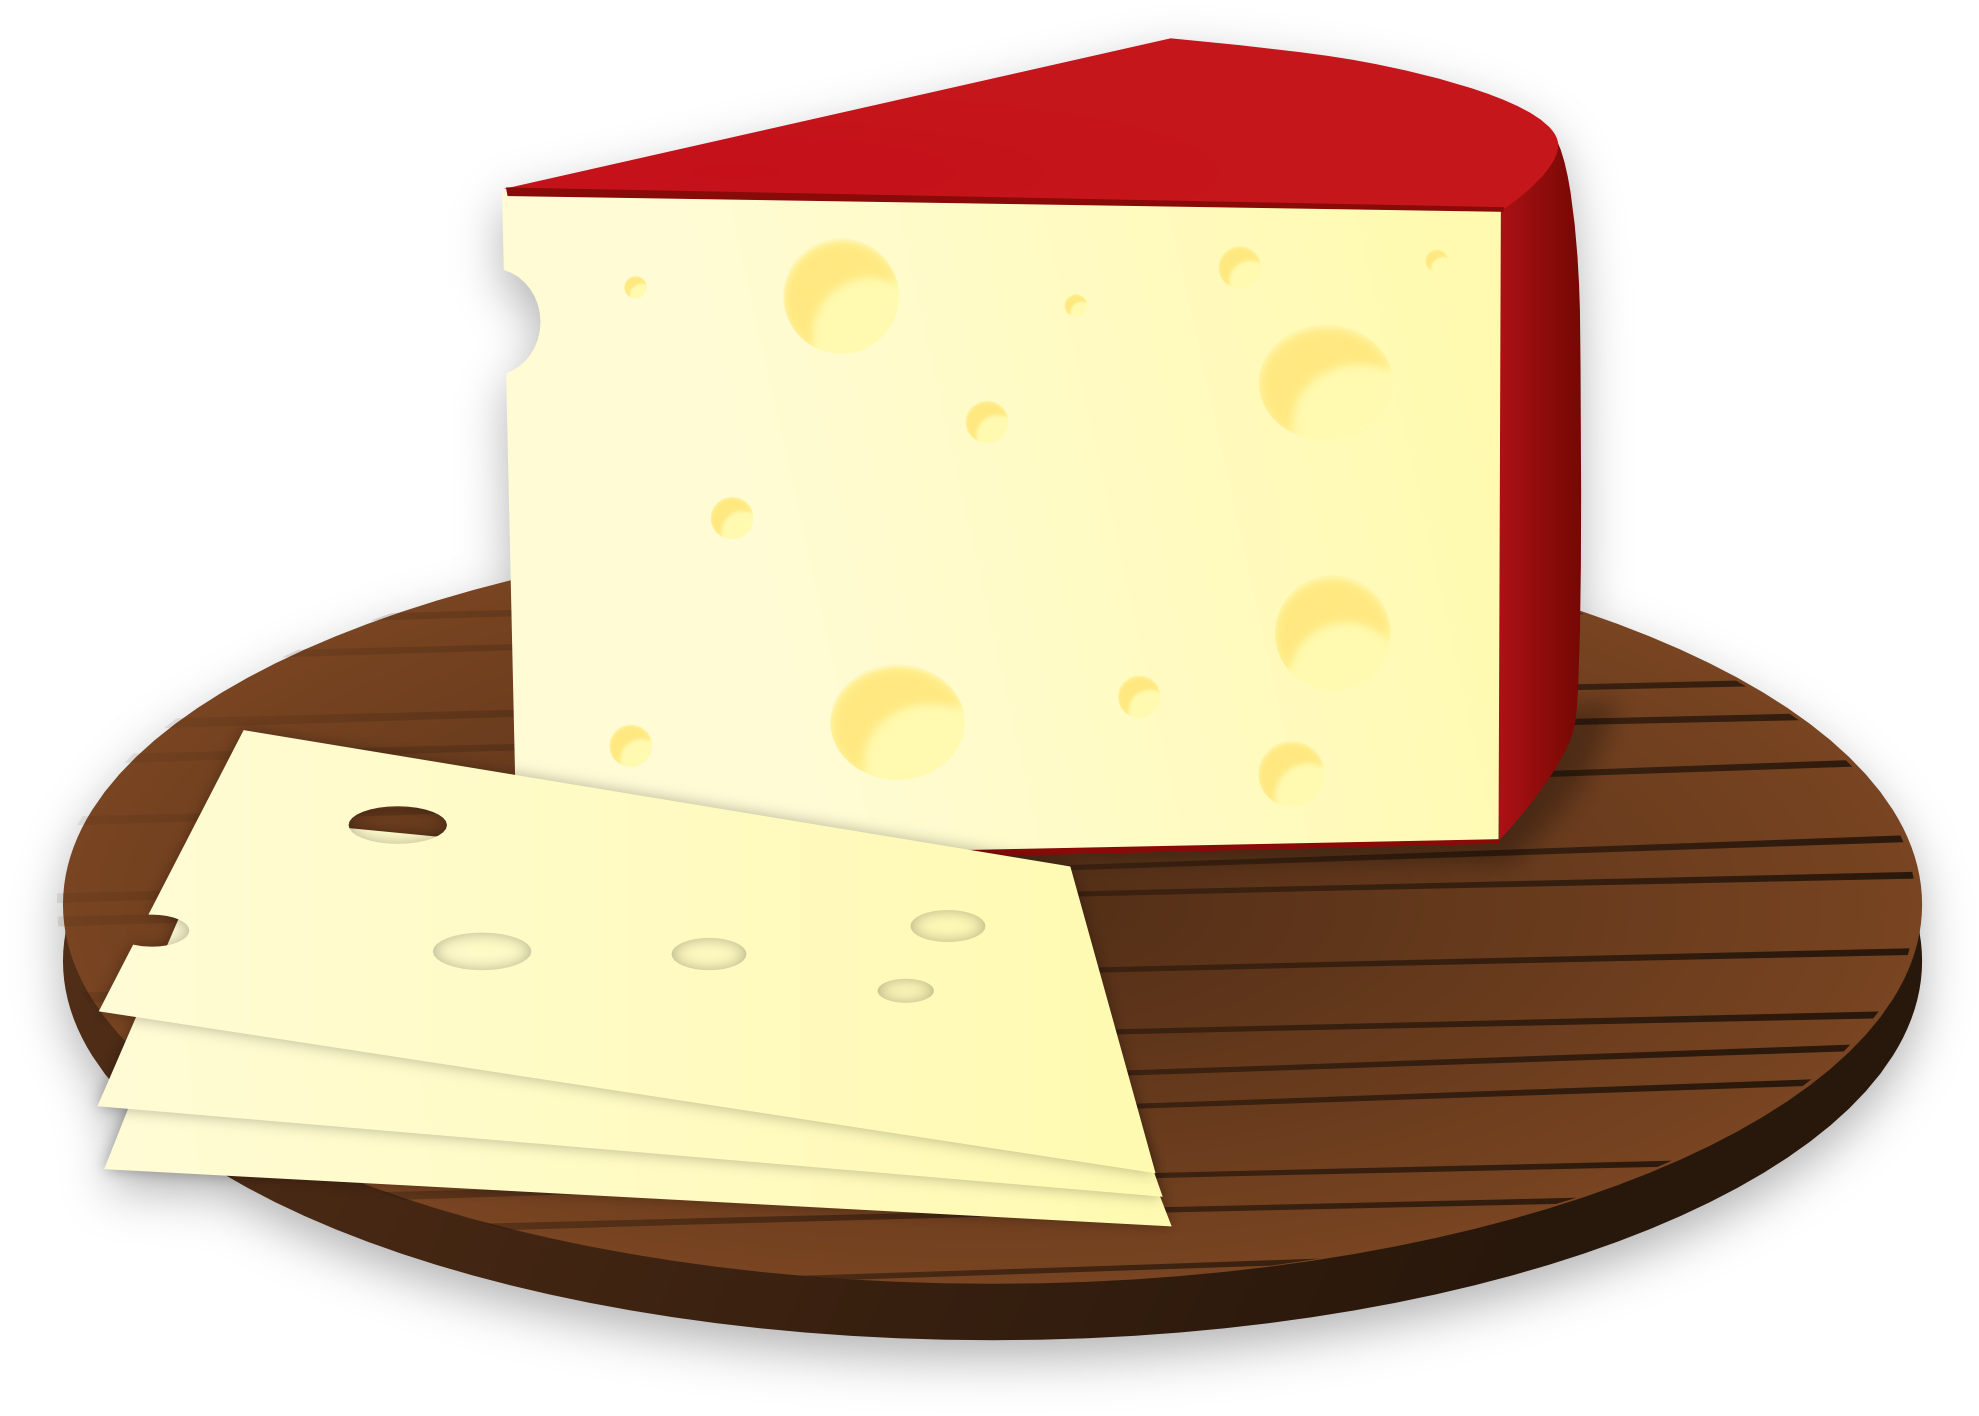 Cheese clipart 6.